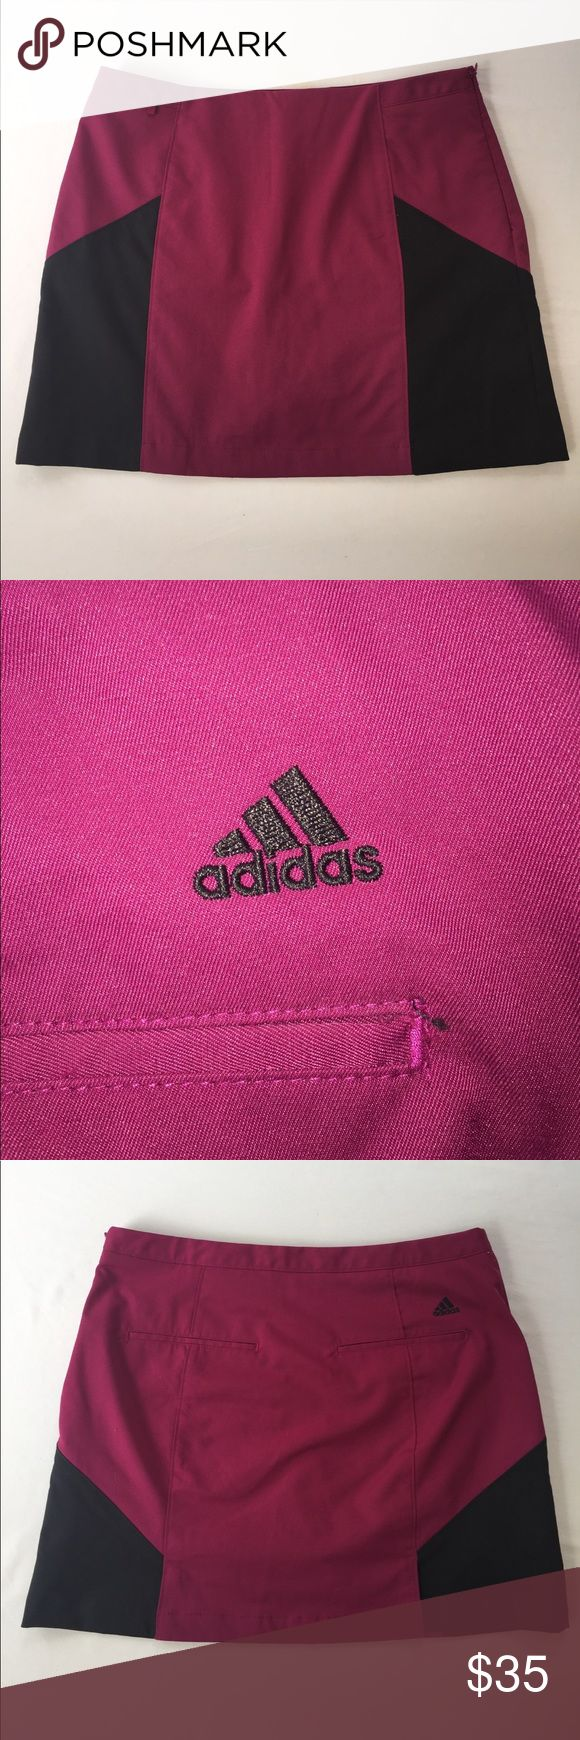 Adidas Fuchsia & Black ClimaCool Athletic Skirt, 2 This awesome Adidas Fuchsia & Black Athletic Skirt, 2  is great for athletic adventures and knocking around town in! EXCELLENT CONDITION, NO DEFECTS AND COMES FROM A SMOKE FREE HOME. adidas Shorts Skorts